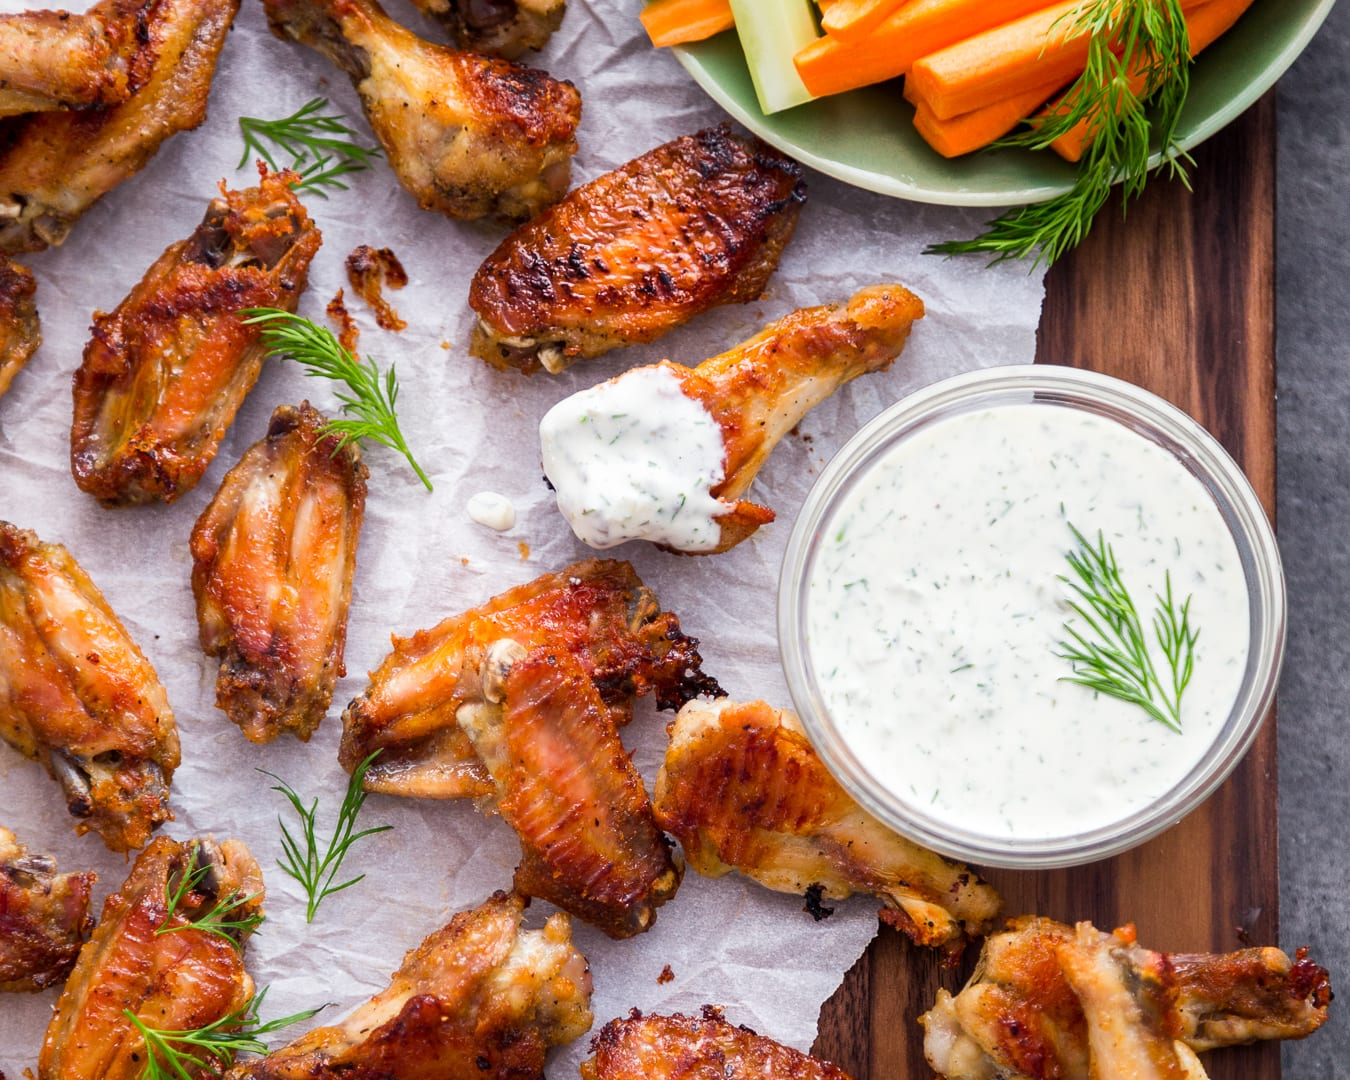 Dill Pickle Wings Dill Pickle Mayo Whole30 Paleo Primal Gourmet Easy